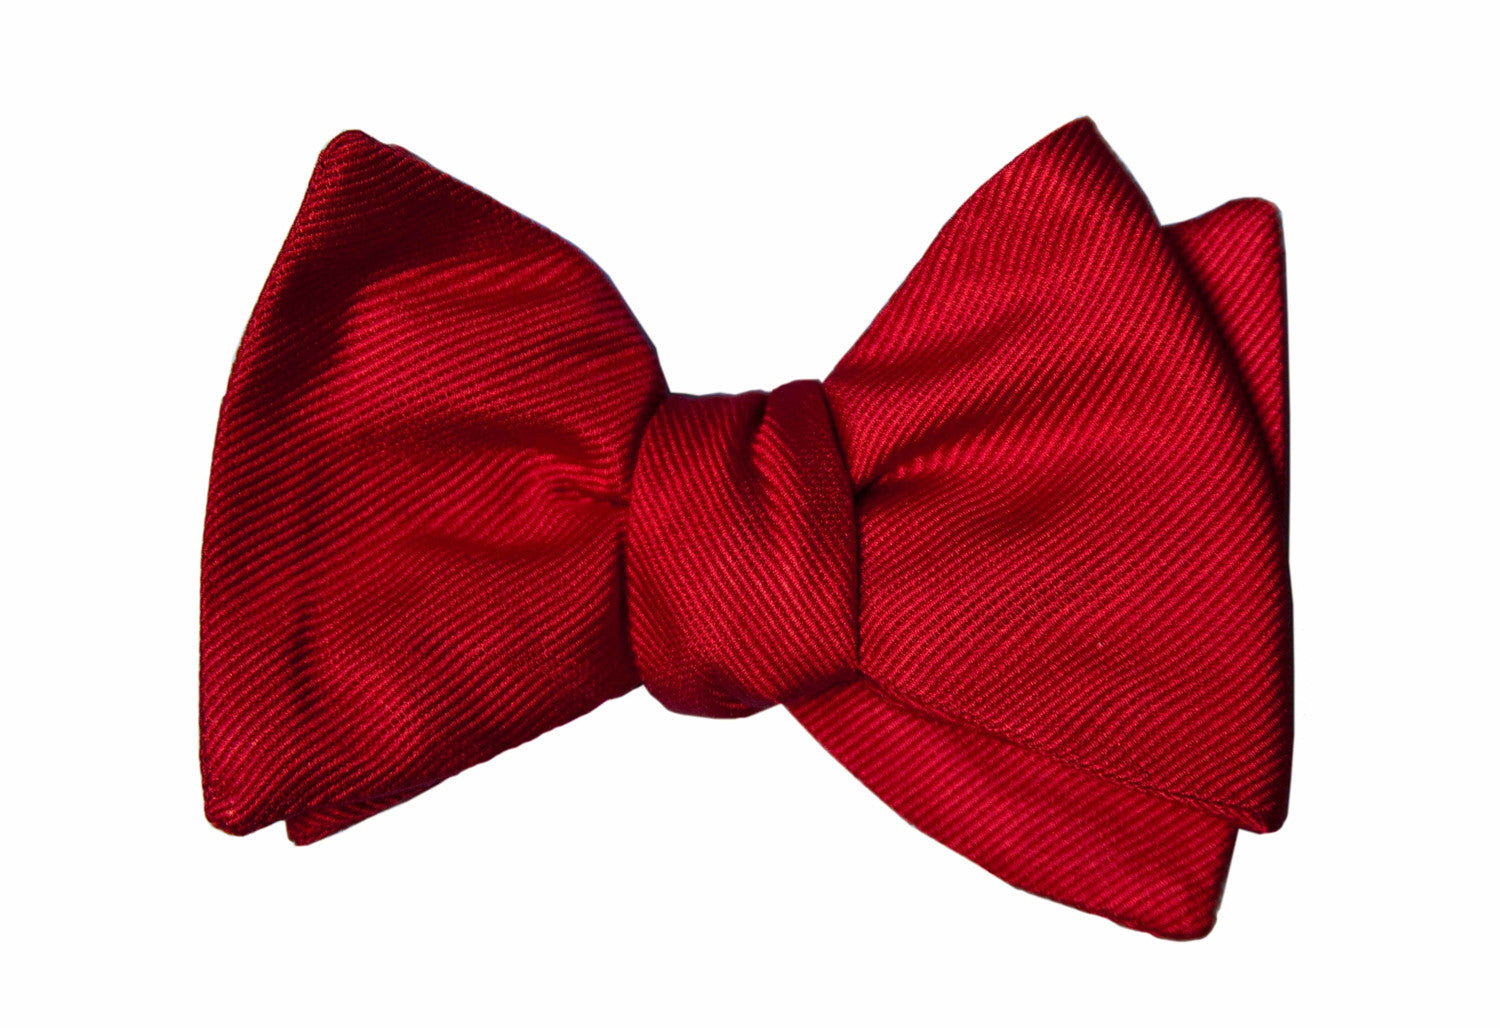 6284686d39f4 Red Solid Grosgrain Bow Tie